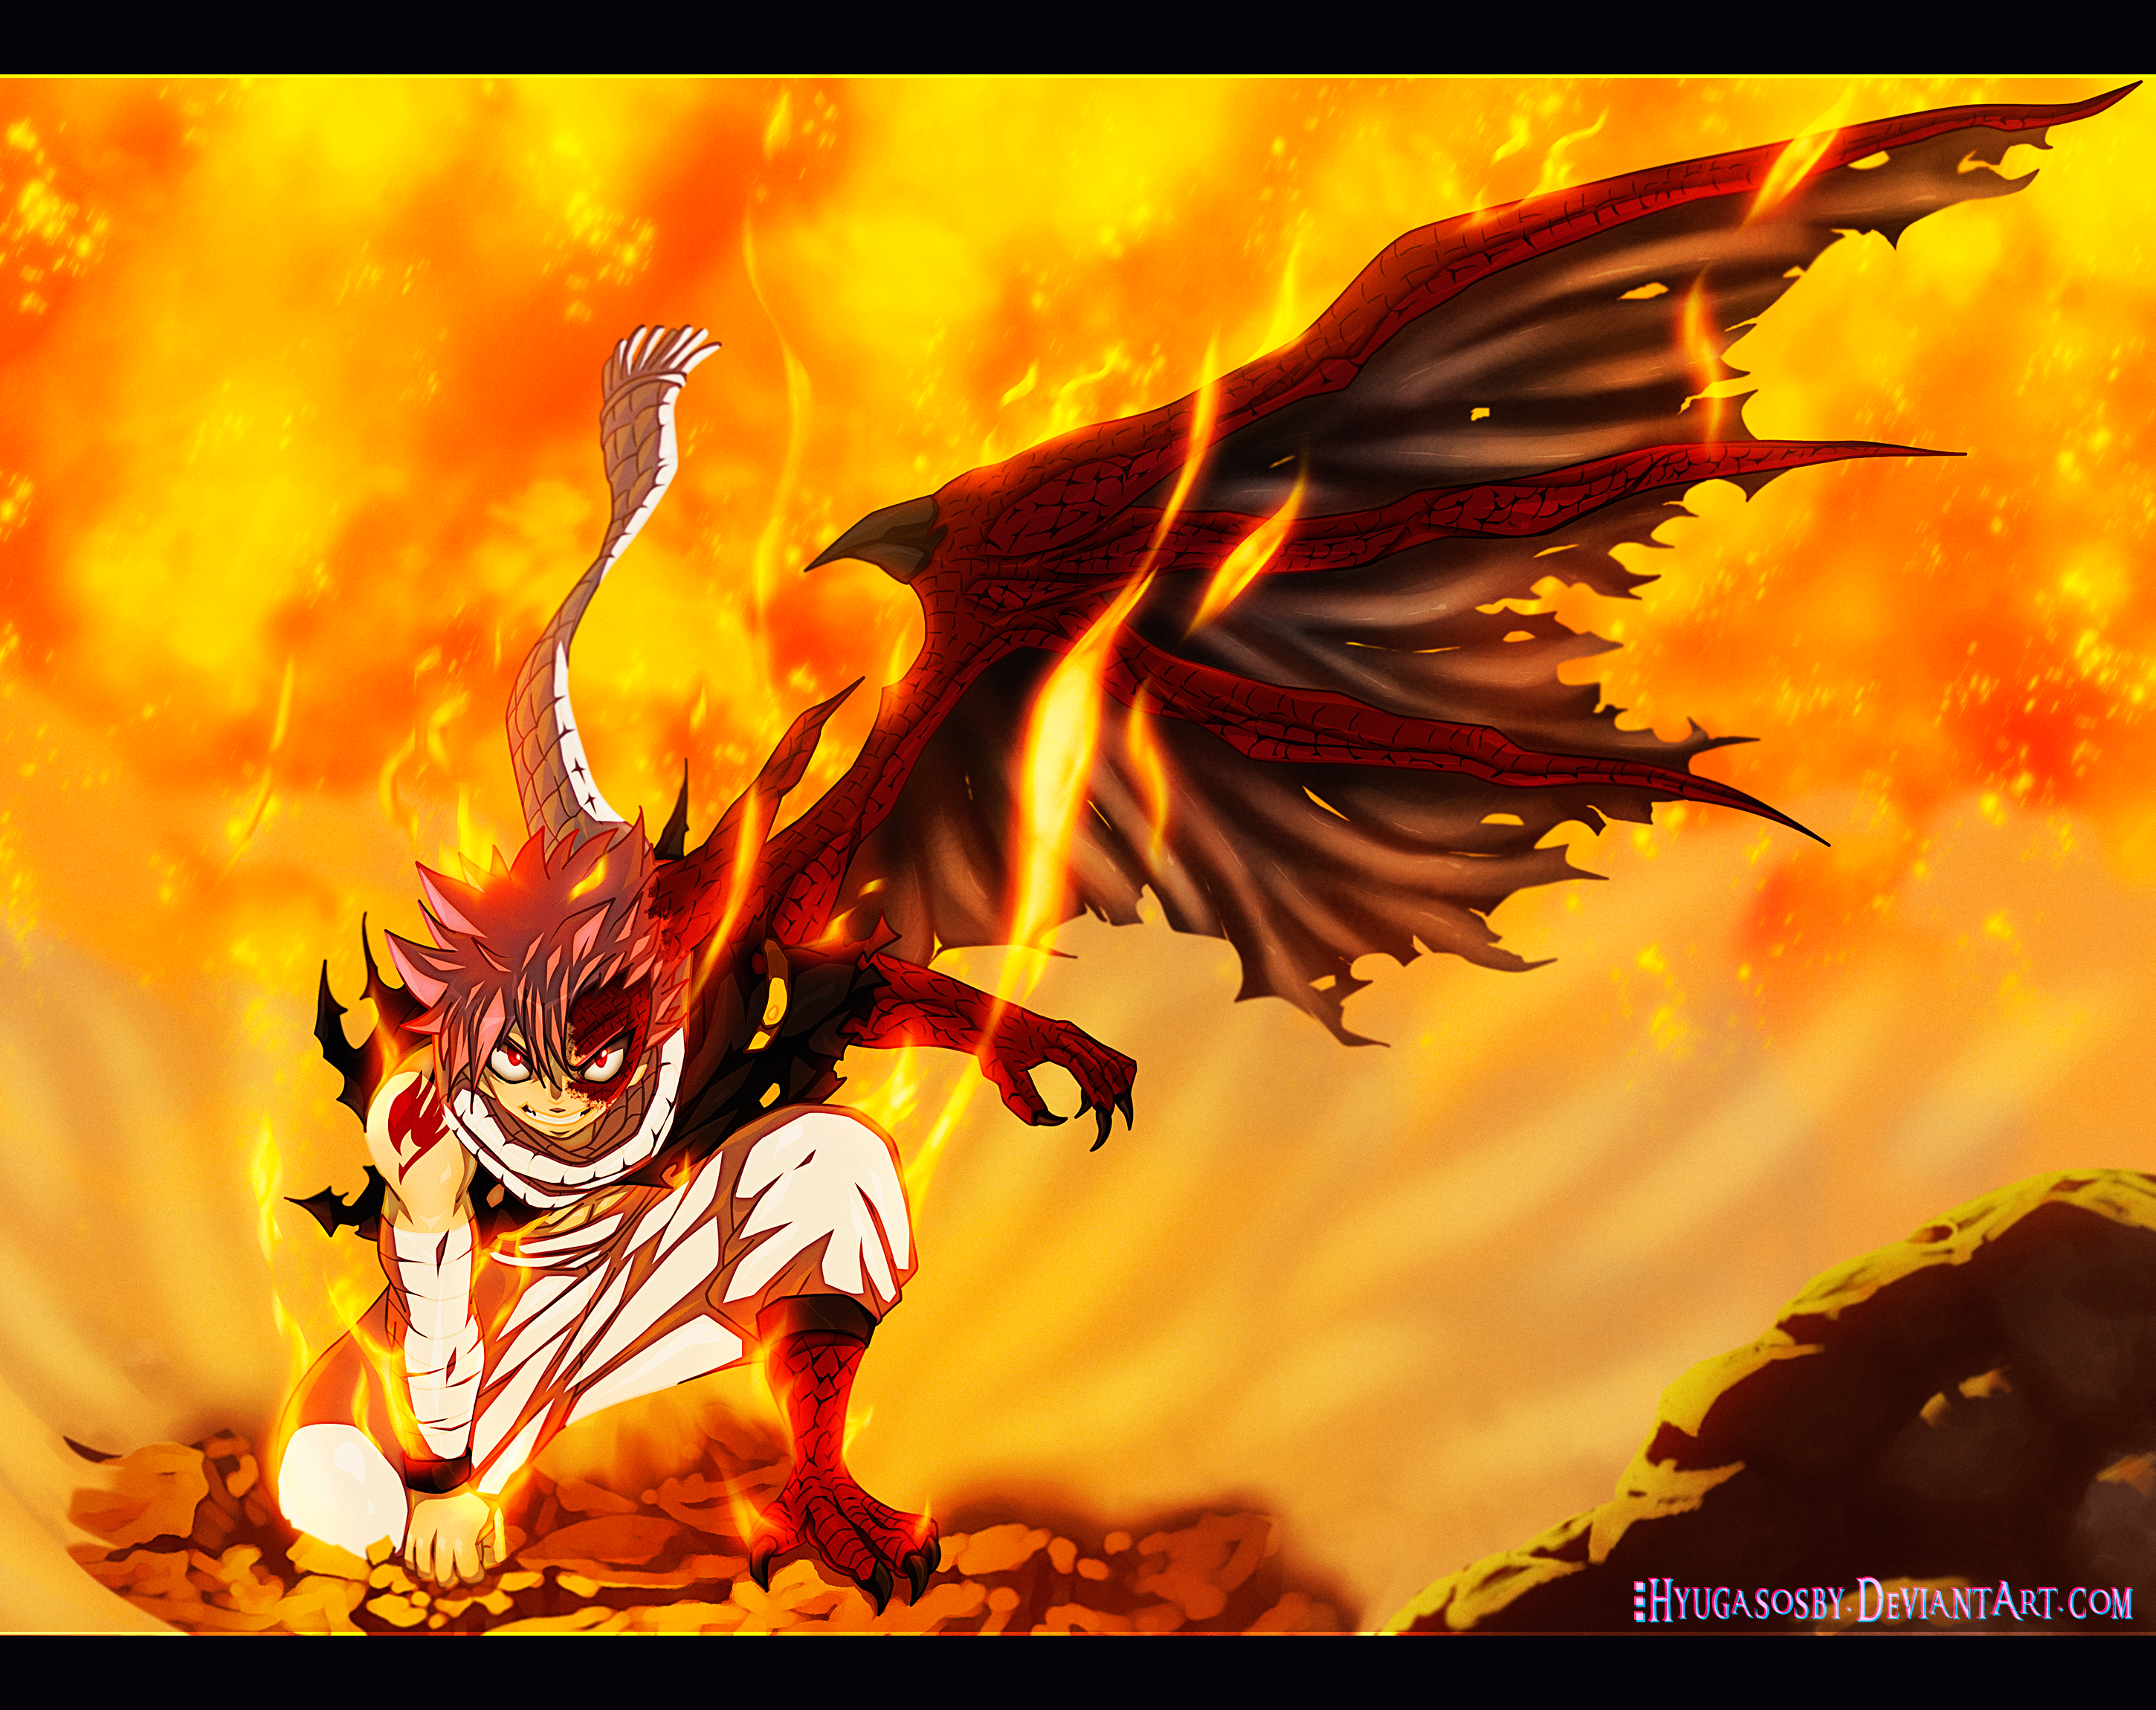 Natsu Dragonize! Victory Shout Fairy Tail 435 Daily